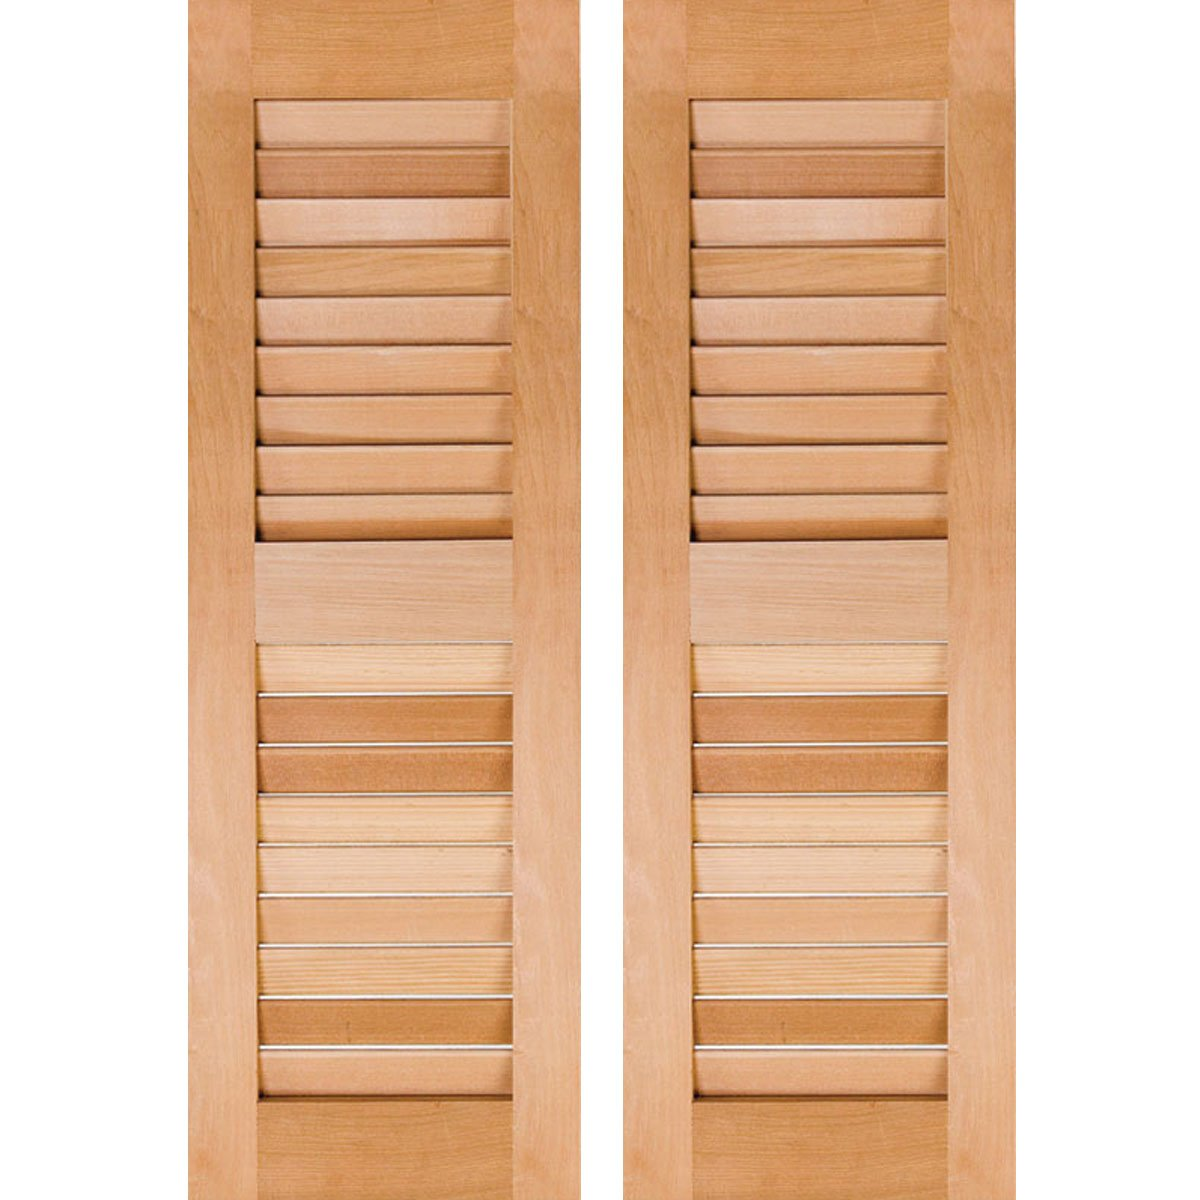 Ekena Millwork RWL12X047UNW Exterior Real Wood Western Red Cedar Louvered Shutters (Per Pair), 12'' x 47'', Unfinished by Ekena Millwork